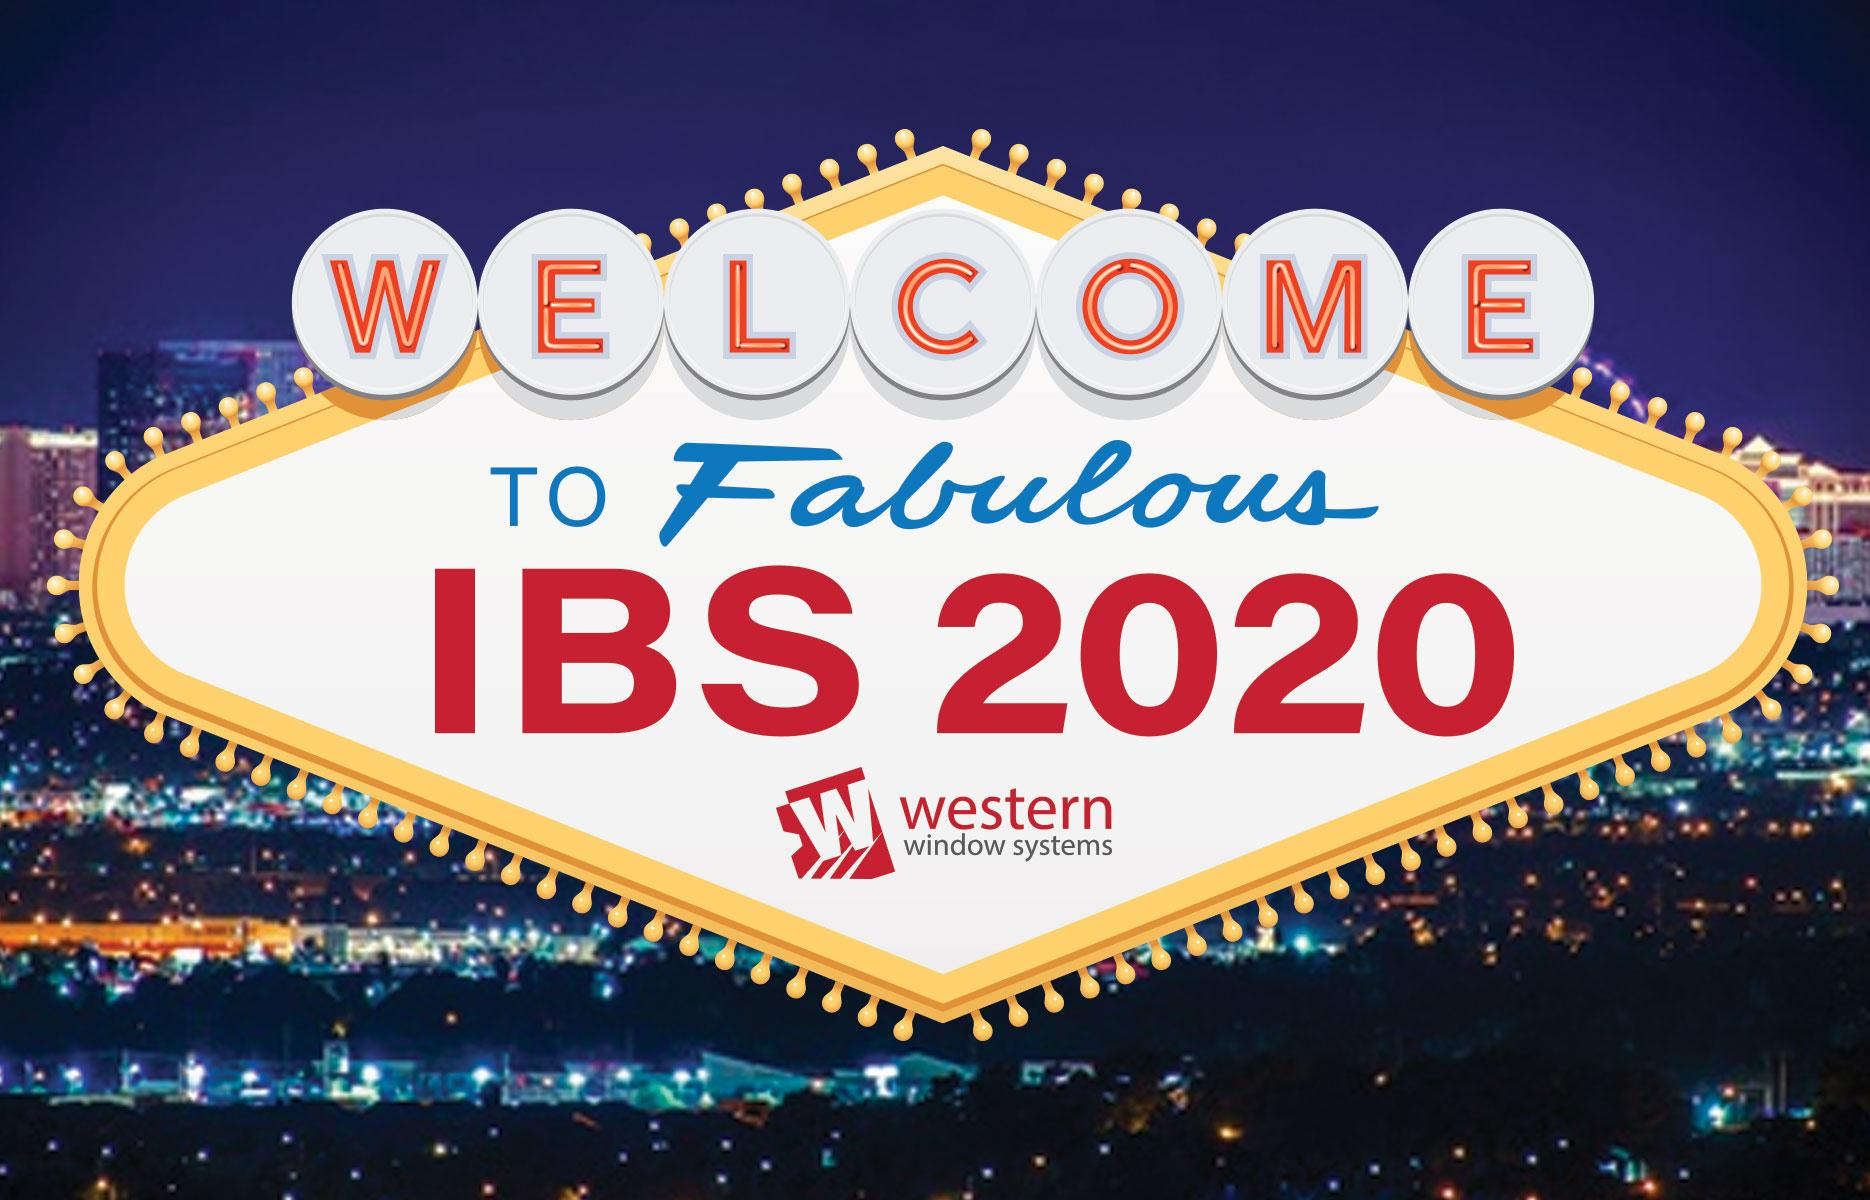 Here's a Sneak Peek at Where We'll Be at the 2020 International Builders' Show in Vegas